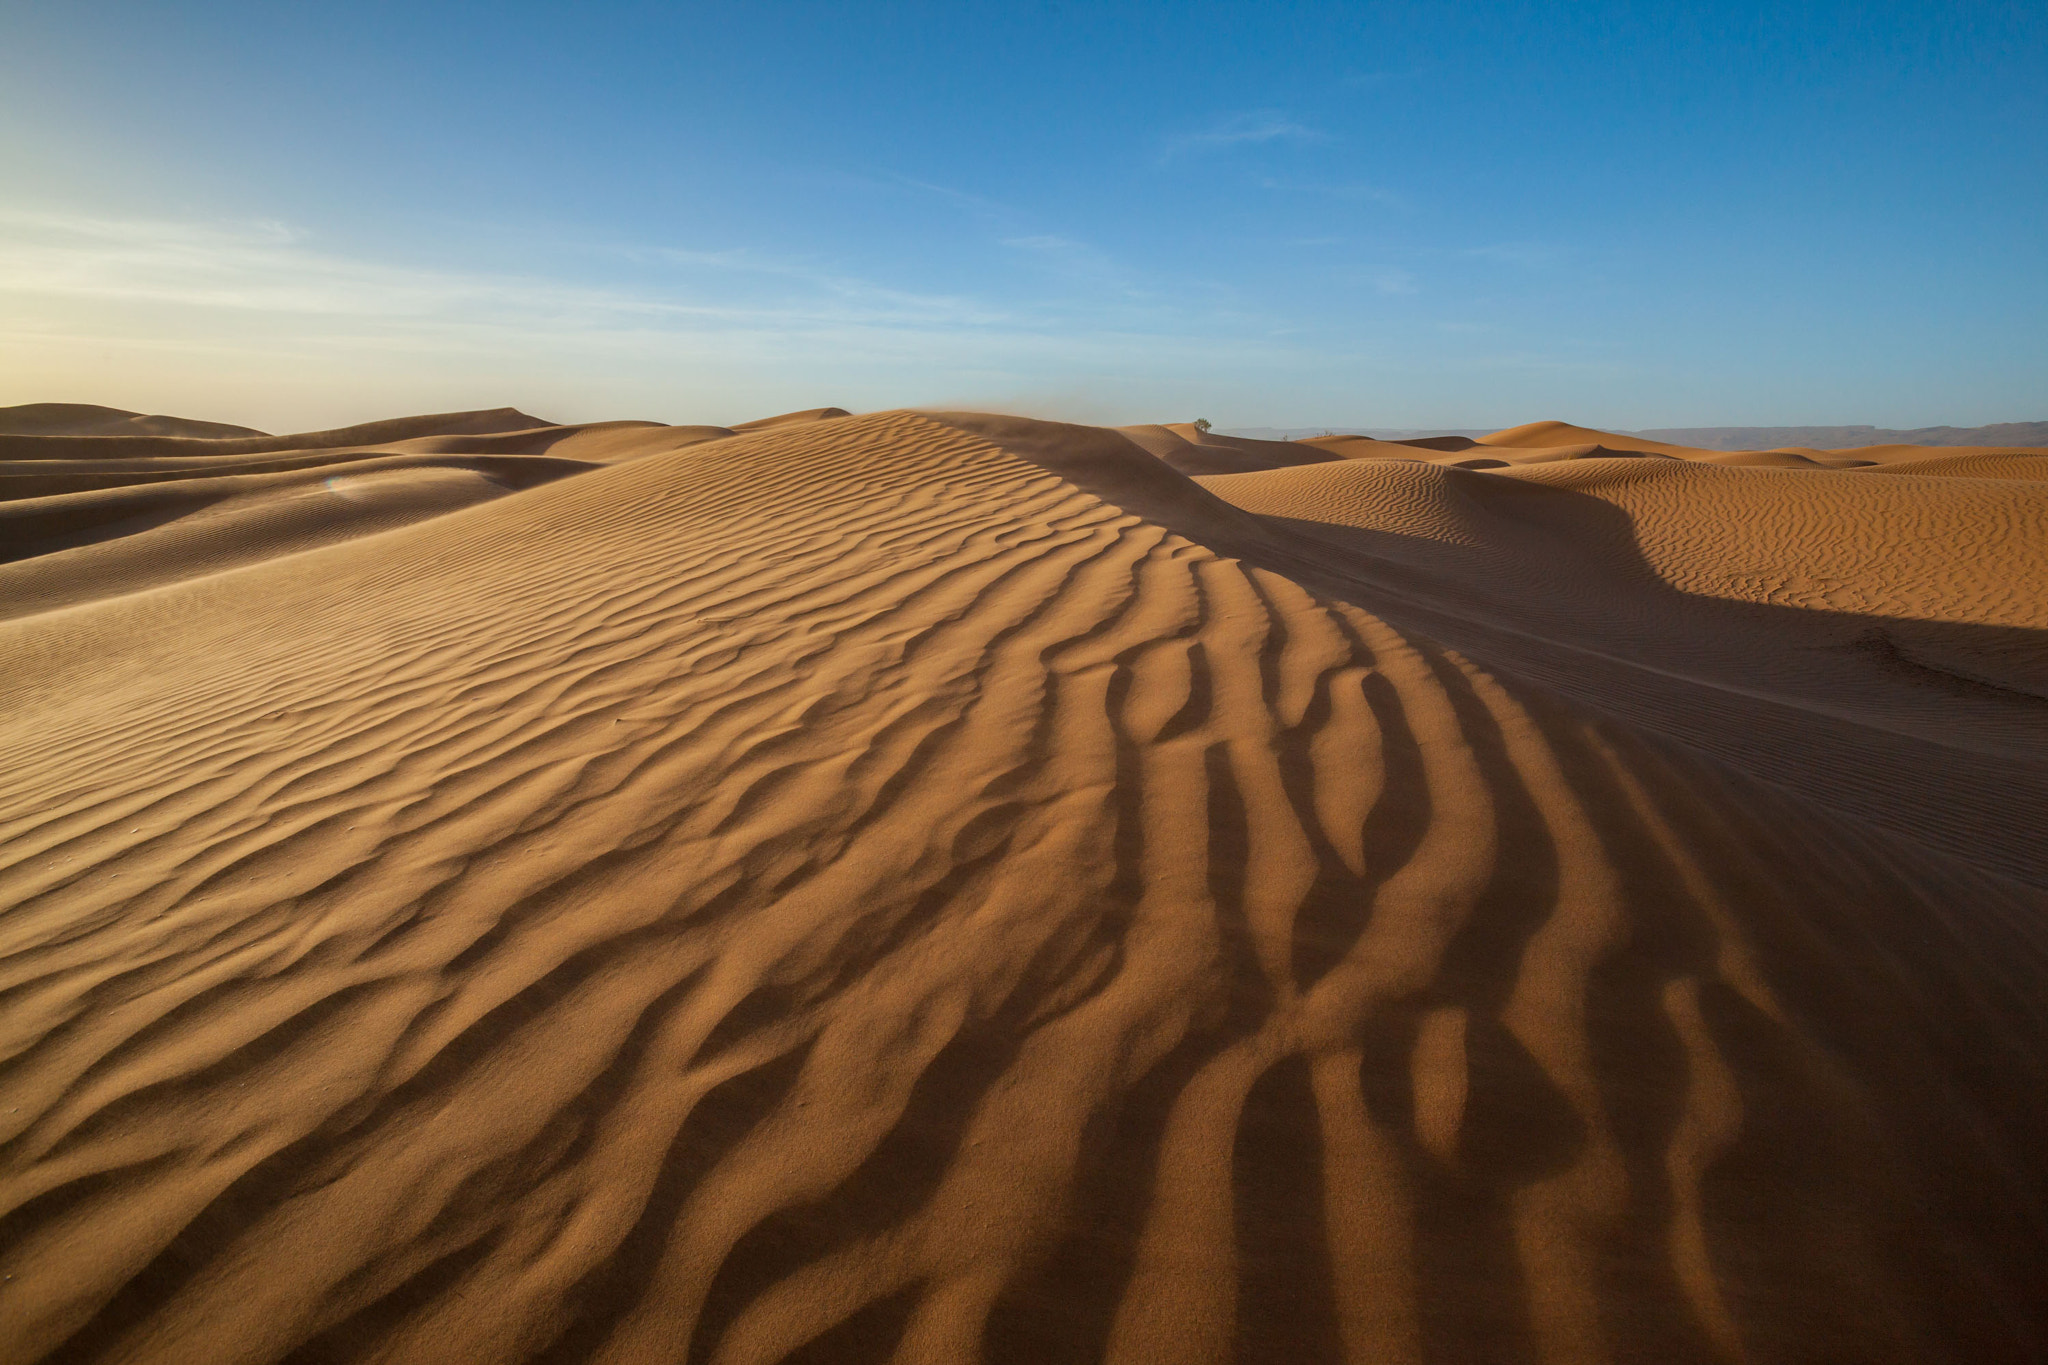 Photograph Desert by Emelianenko Dmitrii on 500px